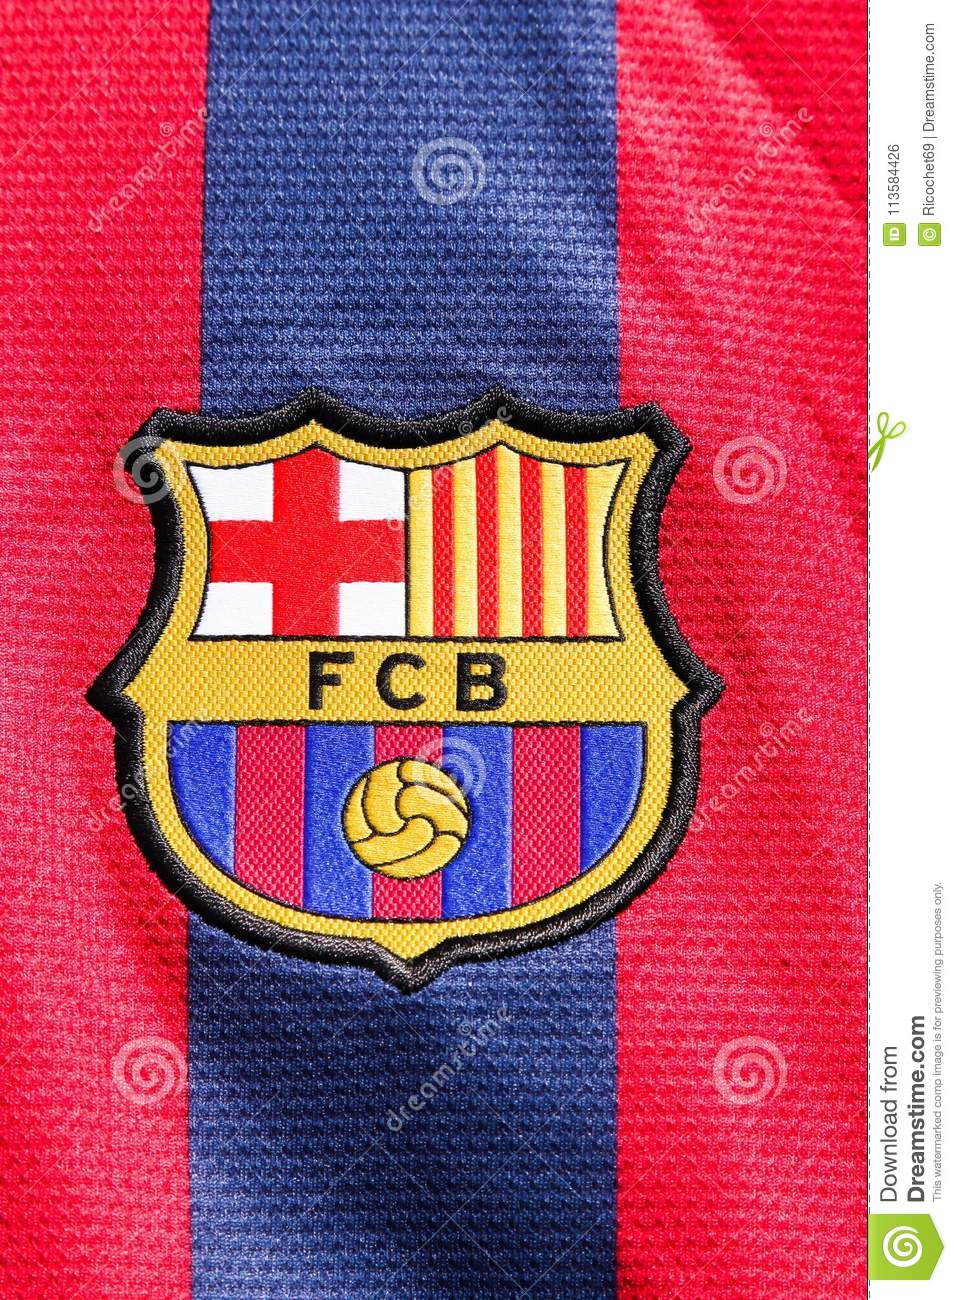 Logo Of Fc Barcelona On A Shirt Editorial Photo Image Of Sport